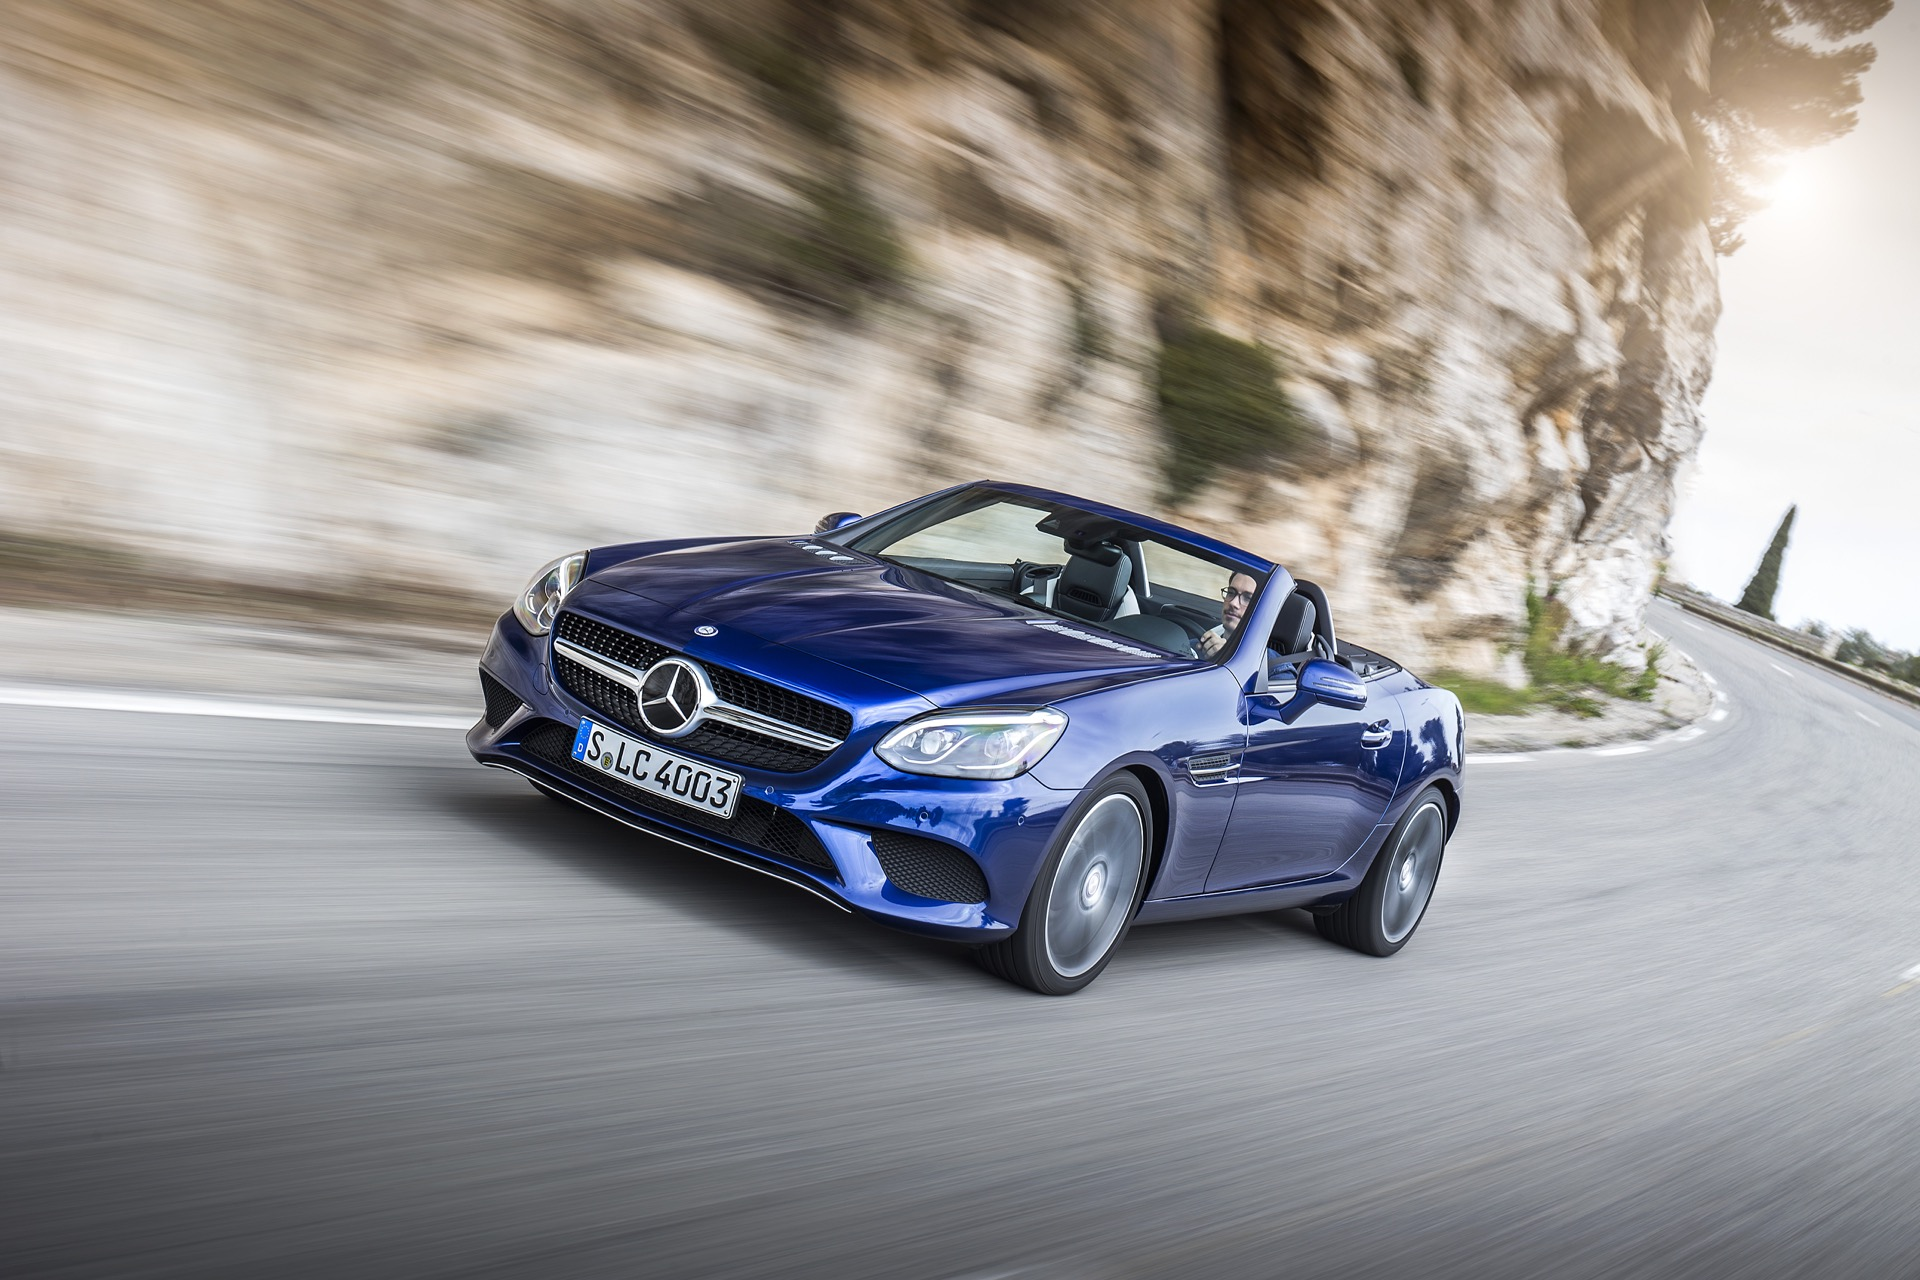 2017 mercedes benz slc class features review the car